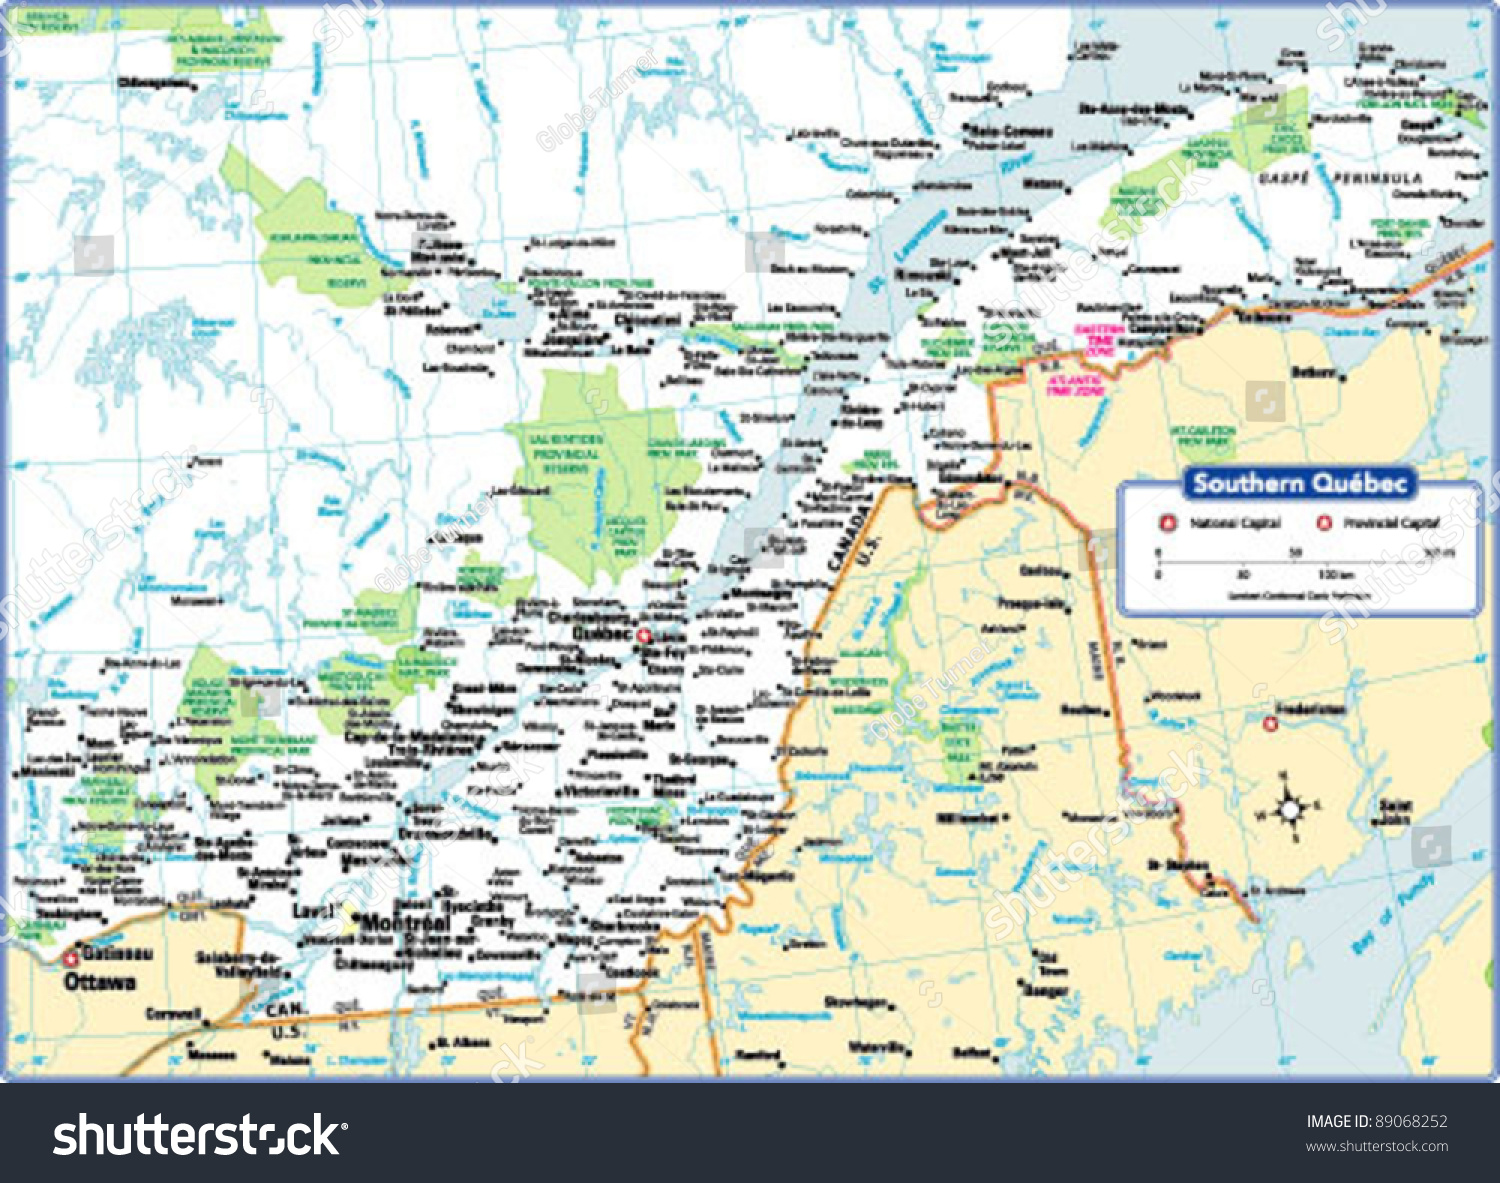 Southern Quebec Map Stock Vector  Shutterstock - Quebec chicago map